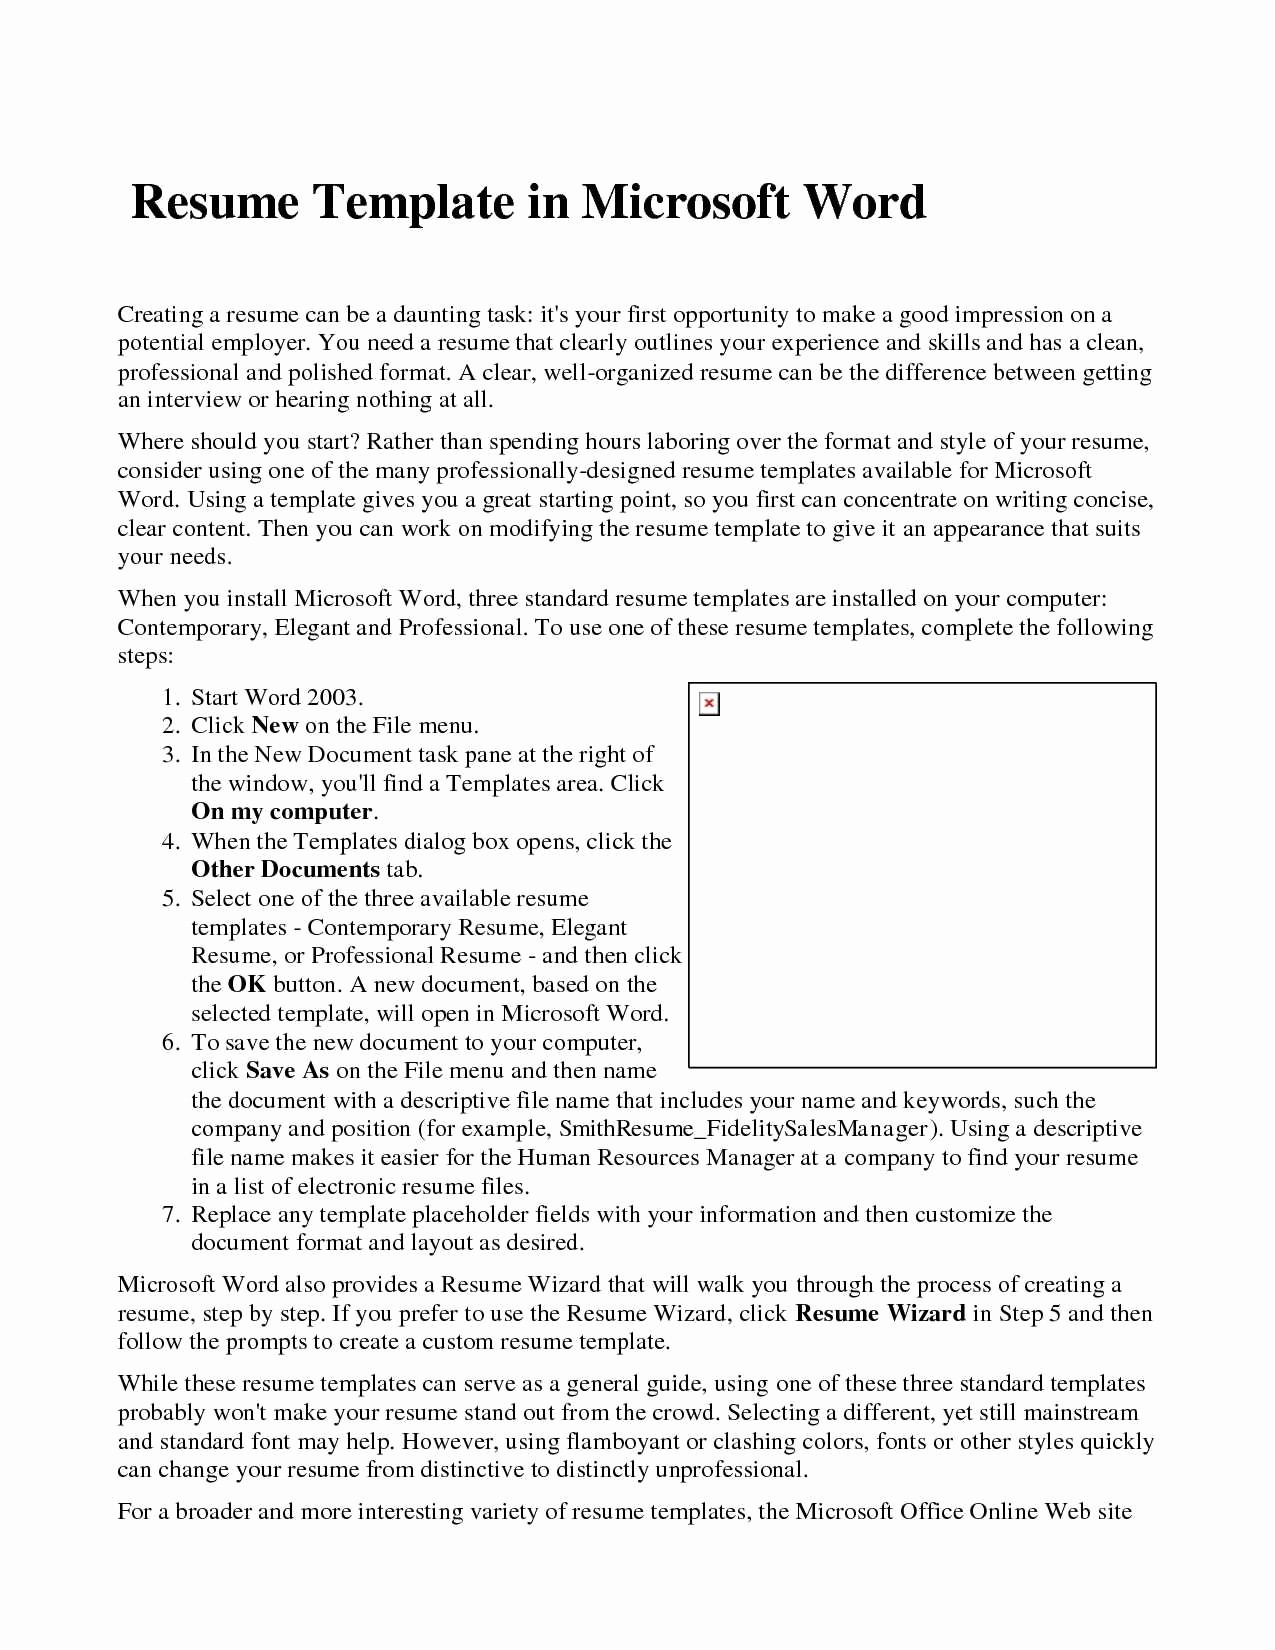 Microsoft Word 2007 Resume Template New Great Microsoft Word 2007 Resume Template